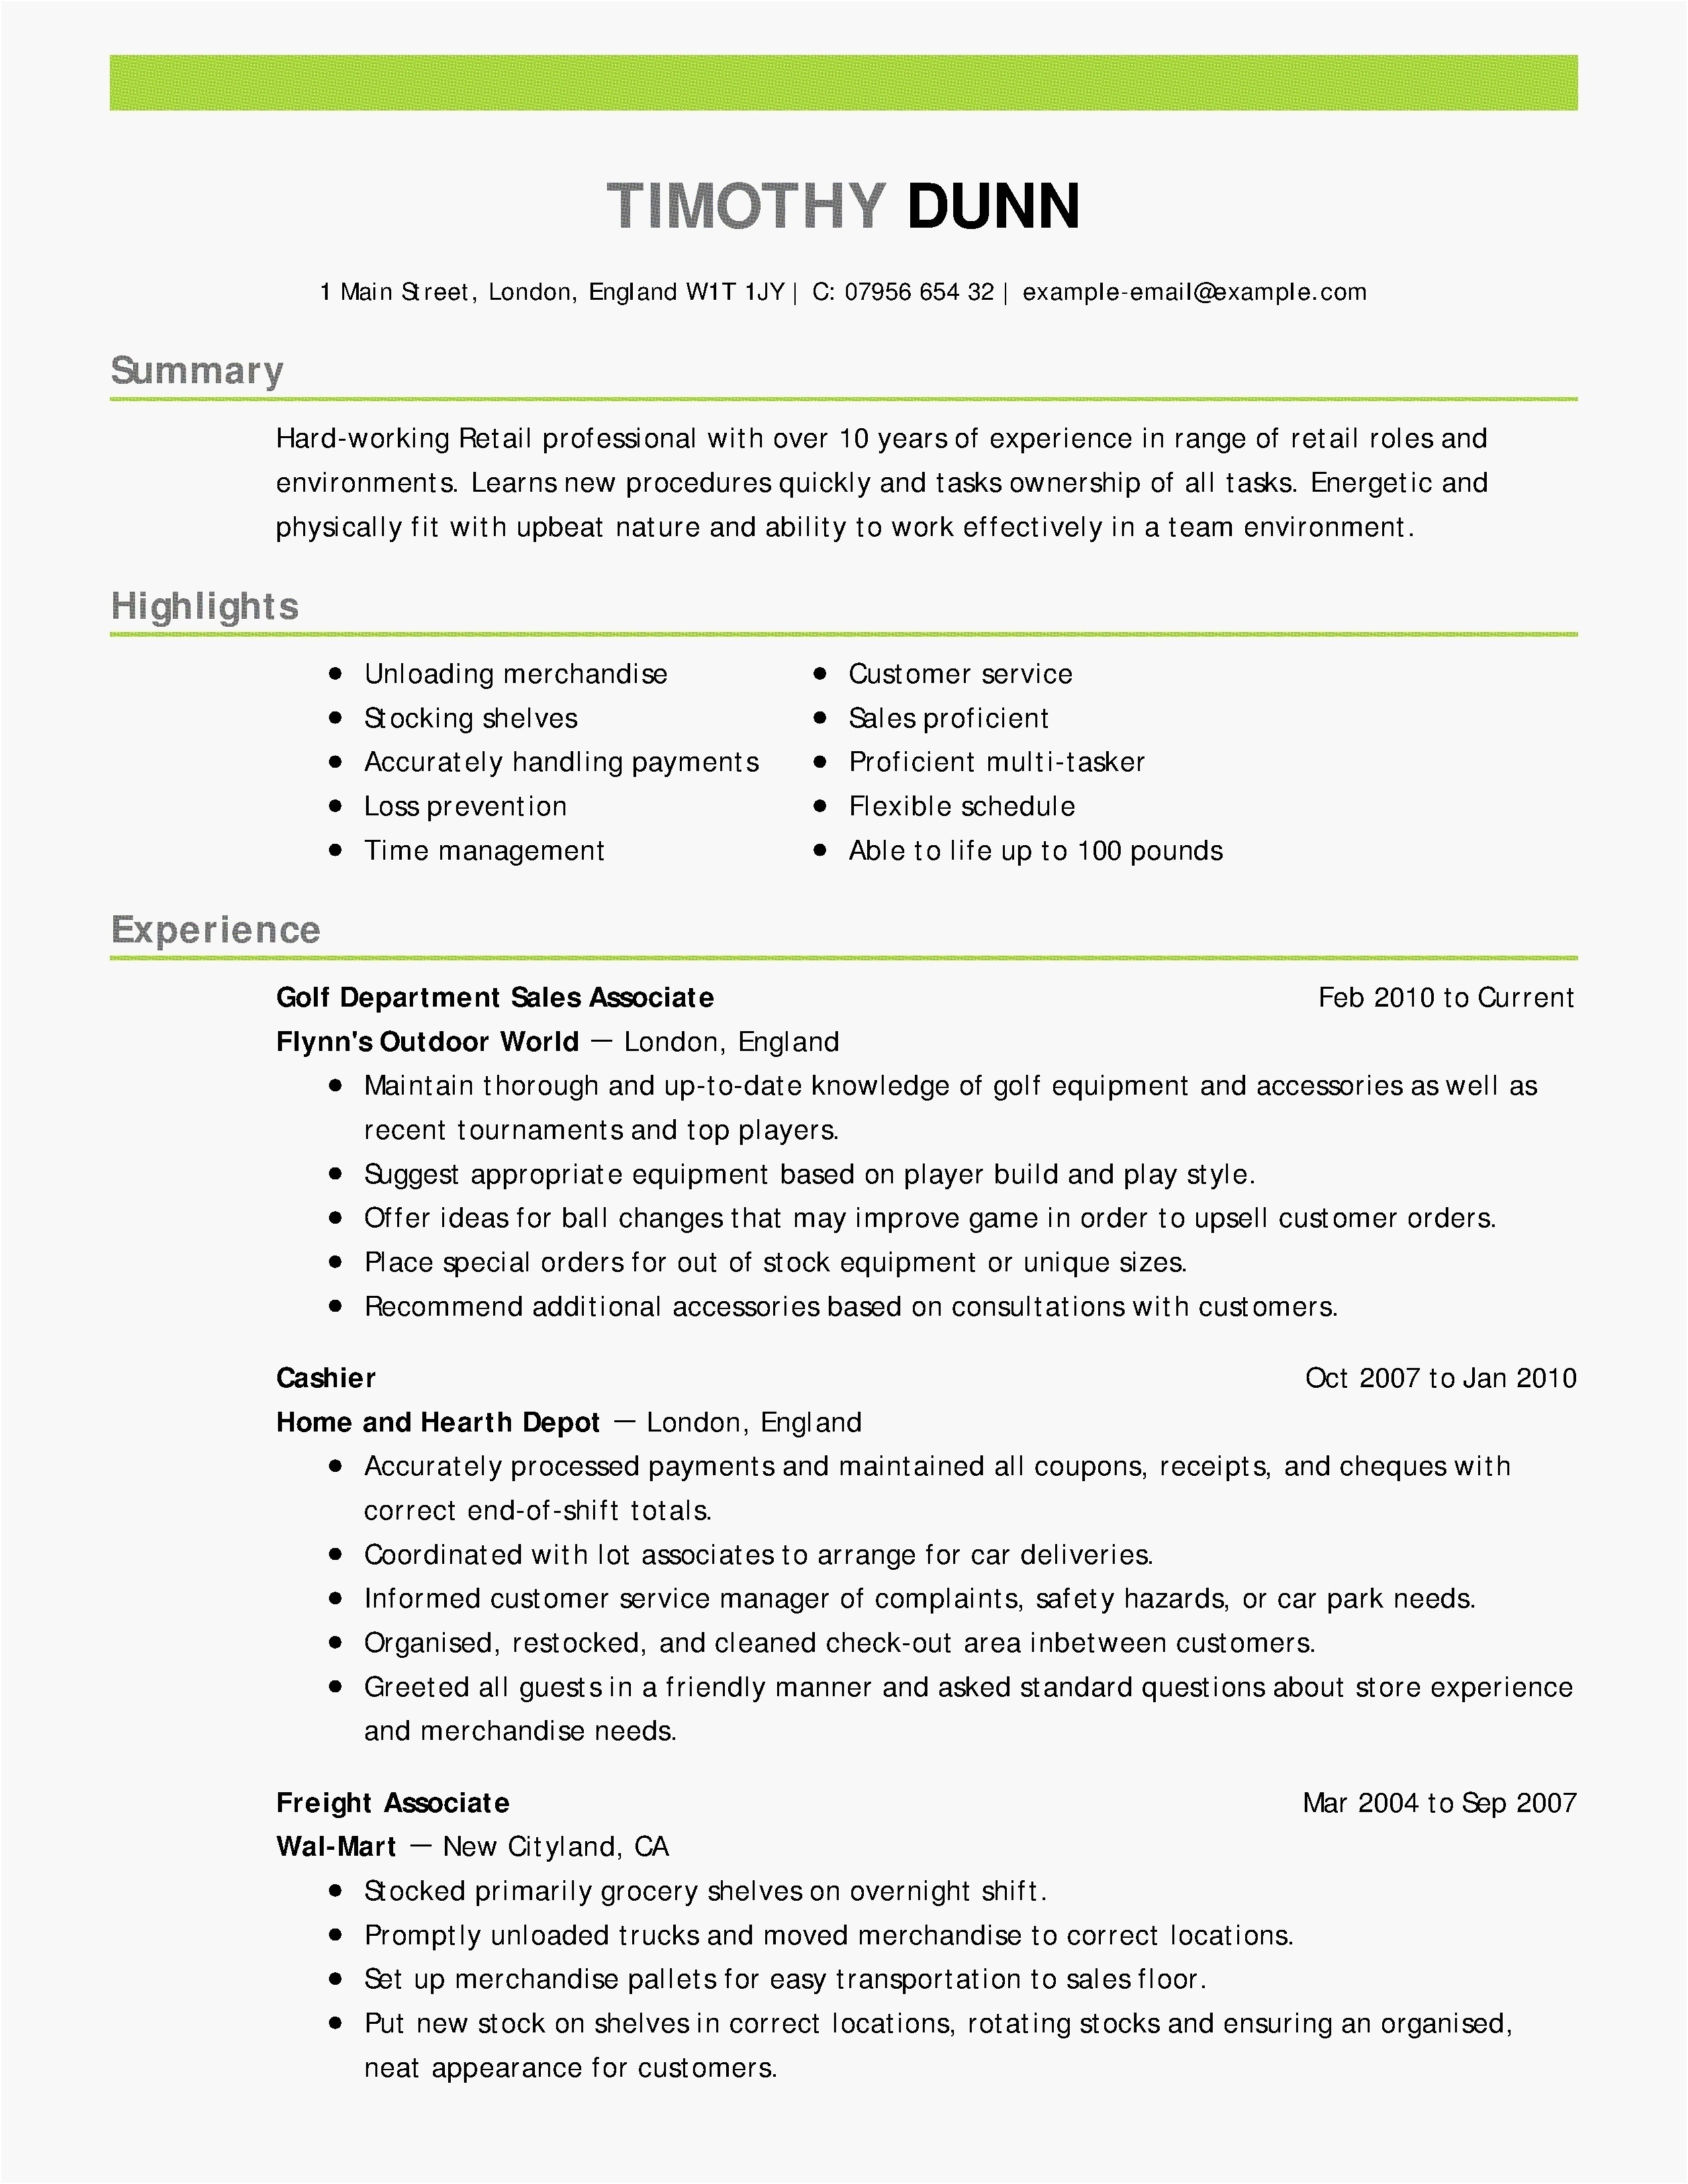 Example Cover Letter for Resume - Nature Cover Letter Example New Fix My Resume Lovely Fresh Entry